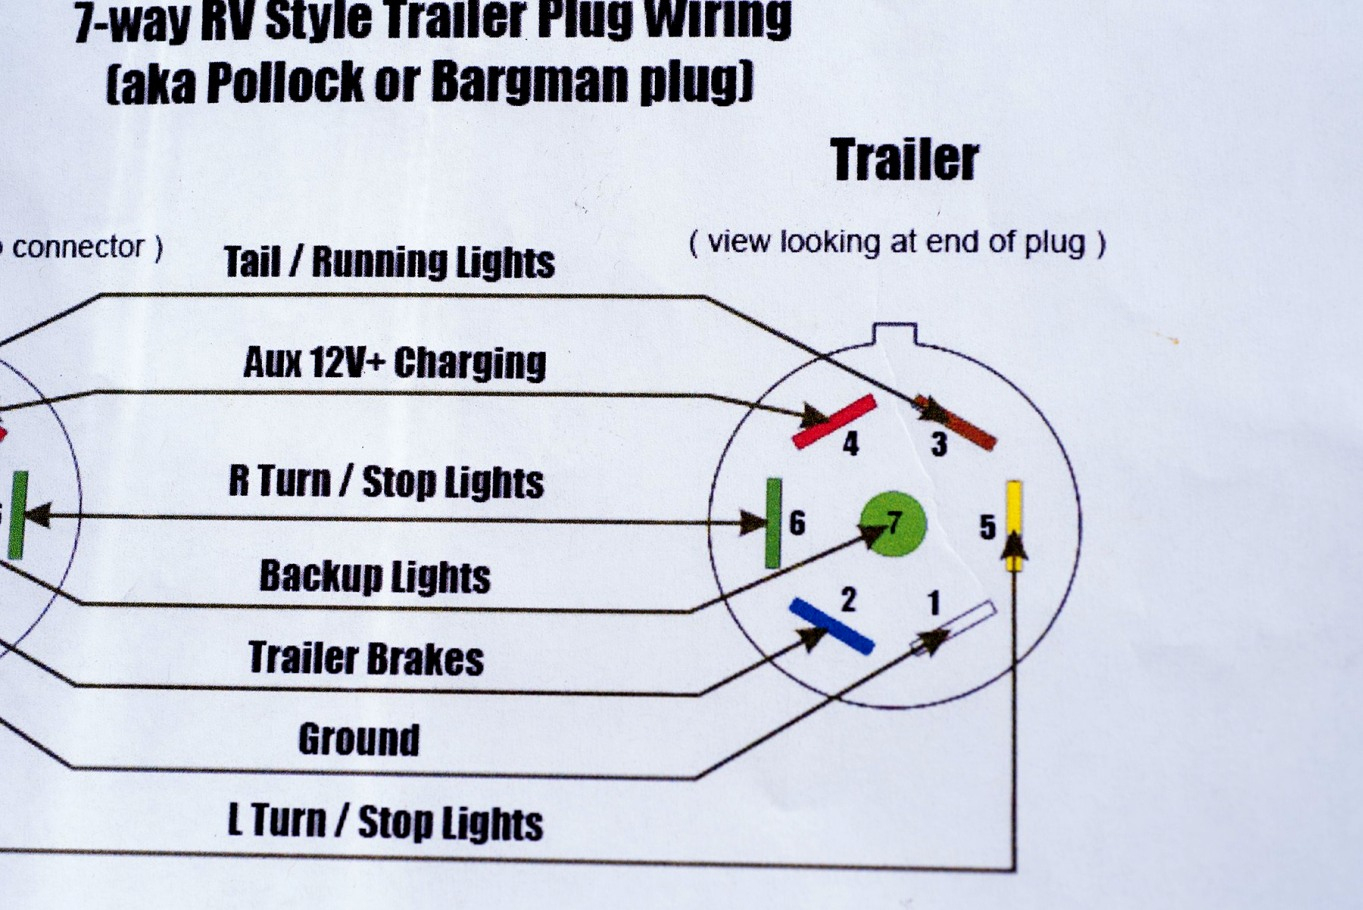 4 Way Flat Trailer Connector Wiring Diagram - Schema Wiring Diagram - Trailer Connector Wiring Diagram 4 Way